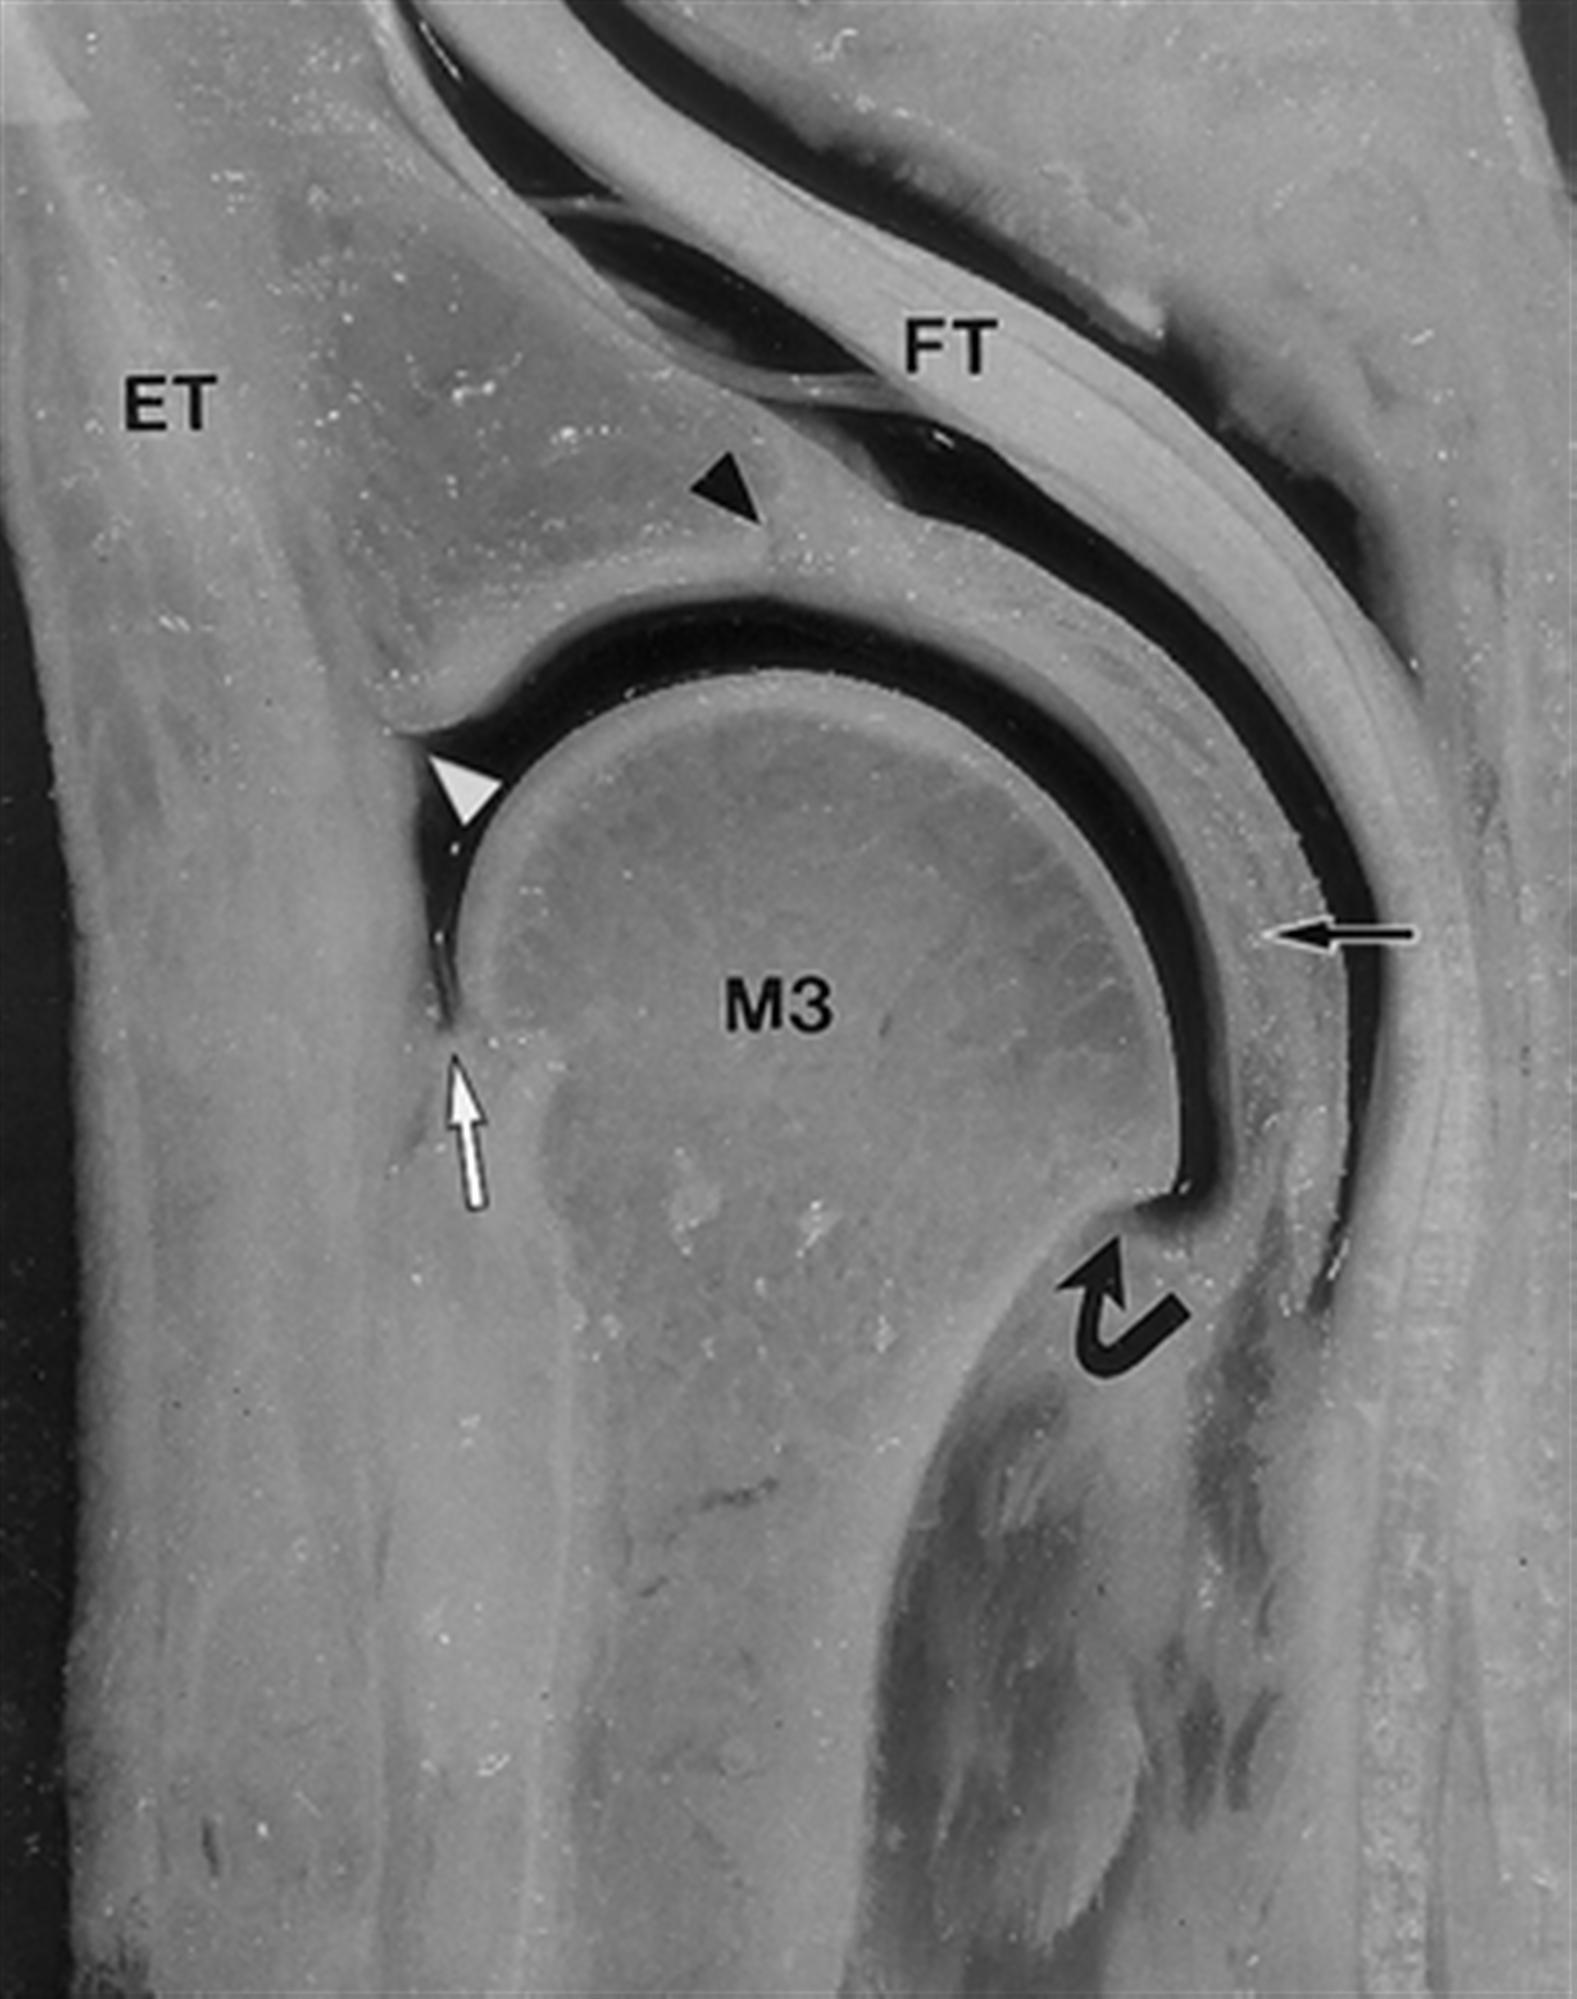 MTP Dislocations - Foot & Ankle - Orthobullets